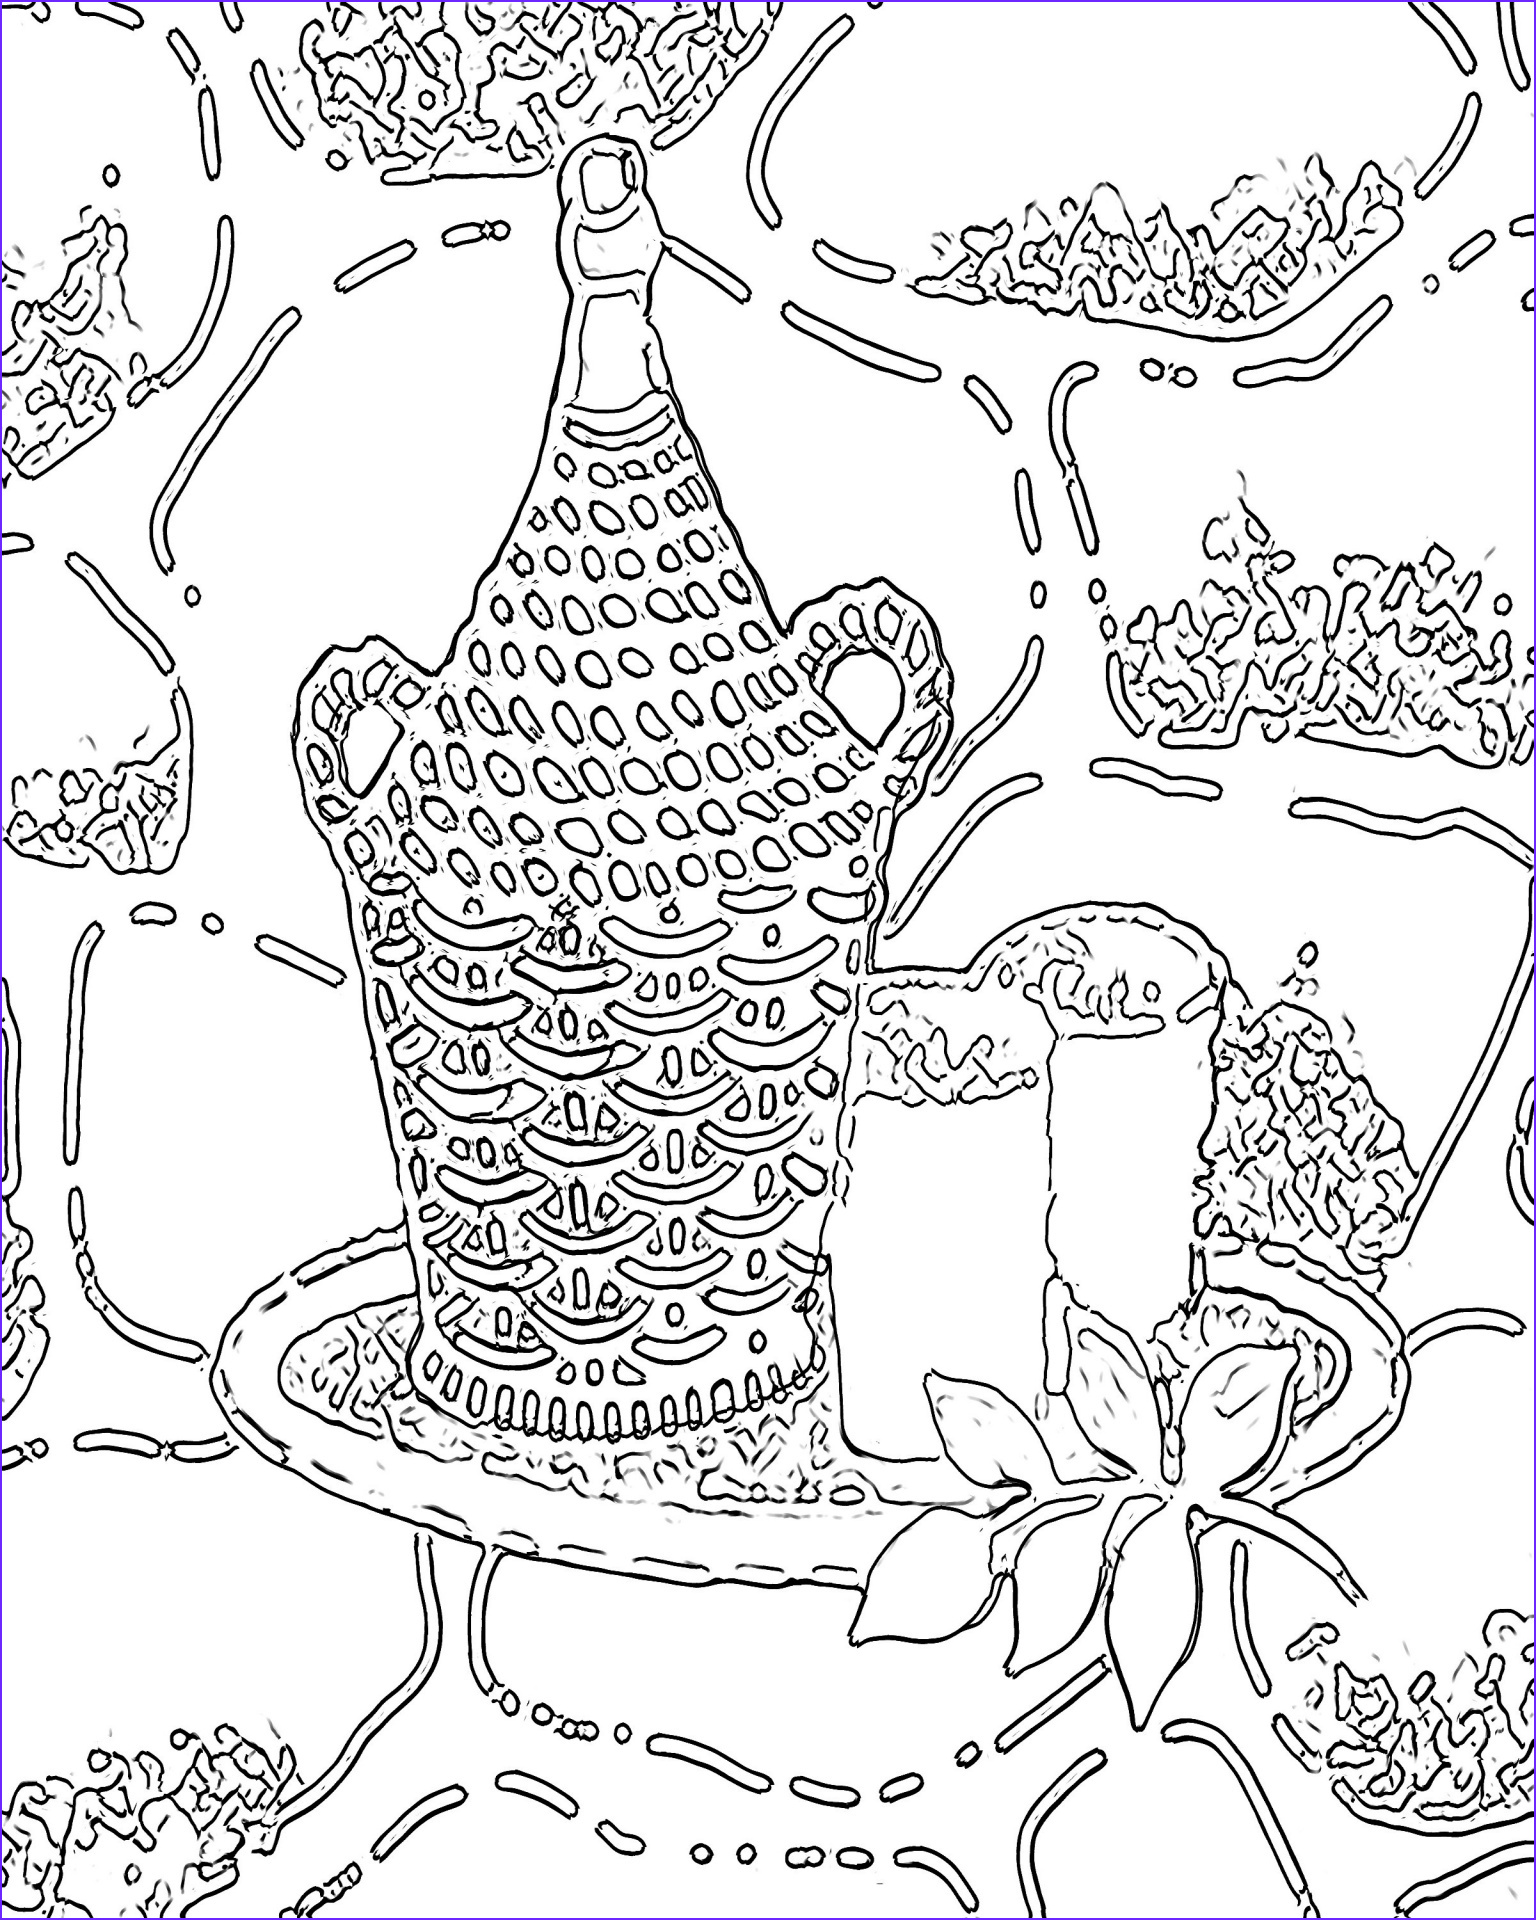 Printable Coloring Pages for Adults Abstract Luxury Photos Free Printable Abstract Coloring Pages for Adults